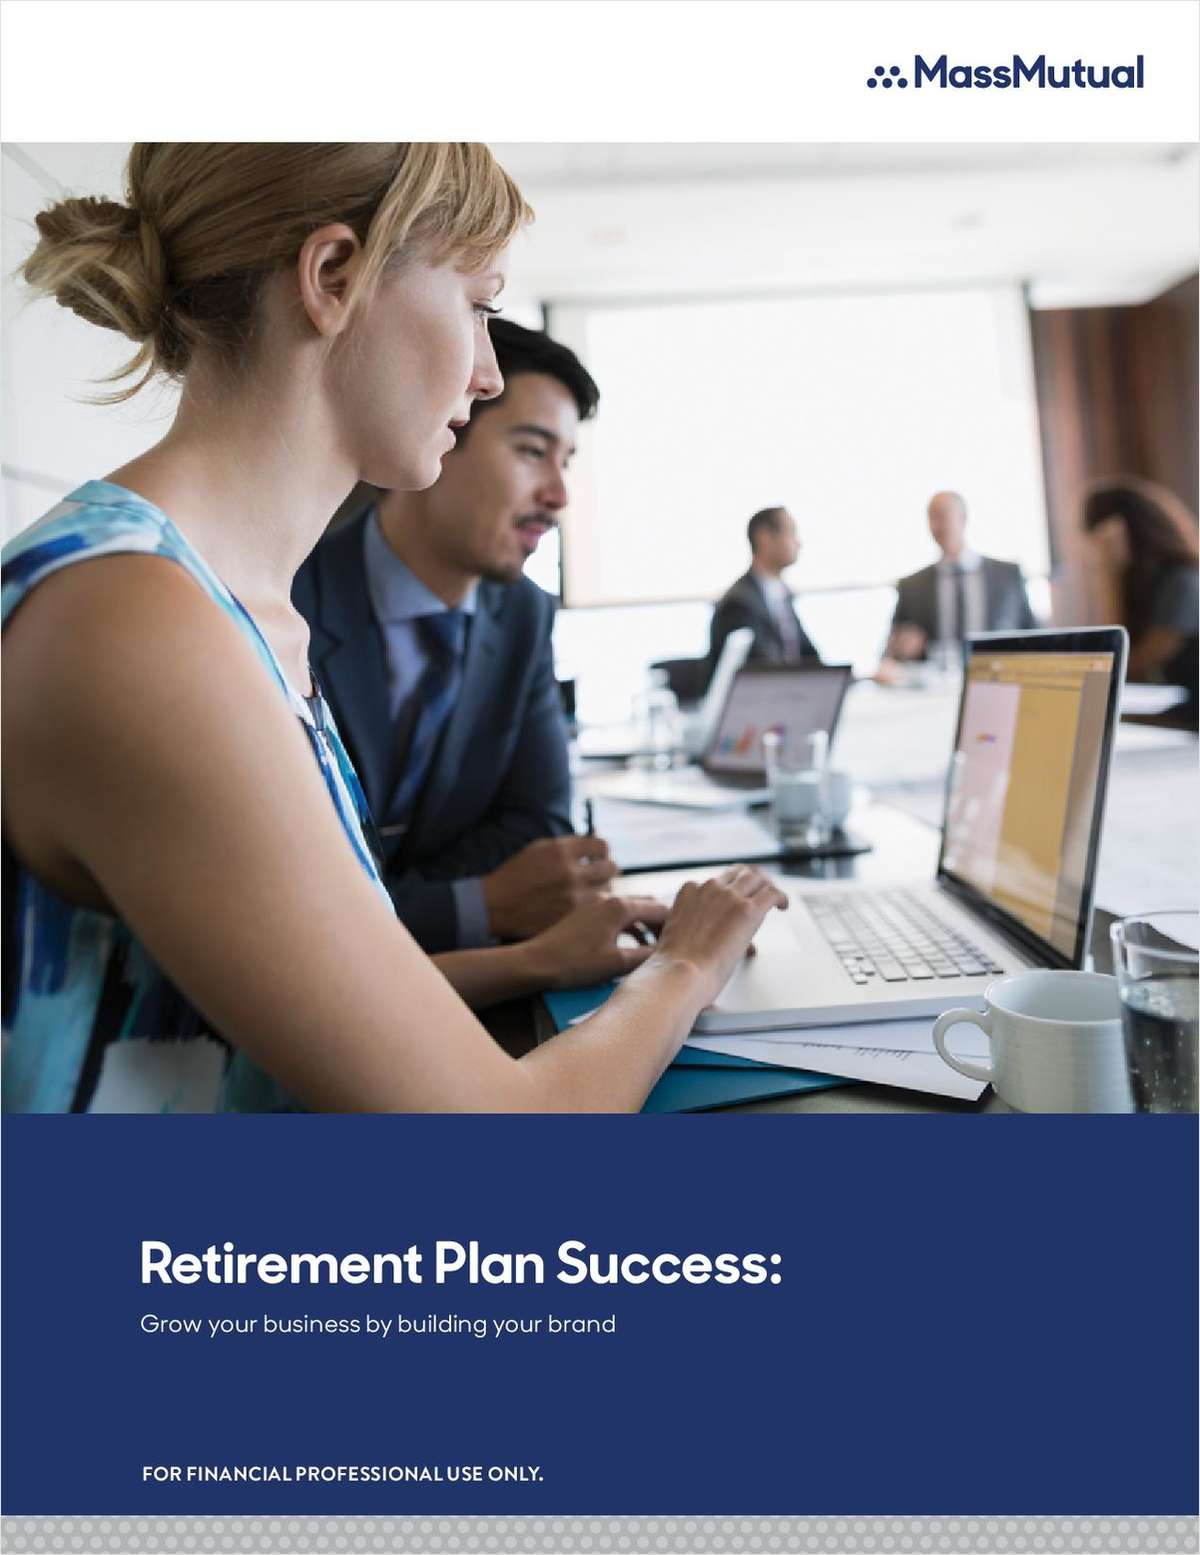 Retirement Plan Success: Grow Your Business By Building Your Brand